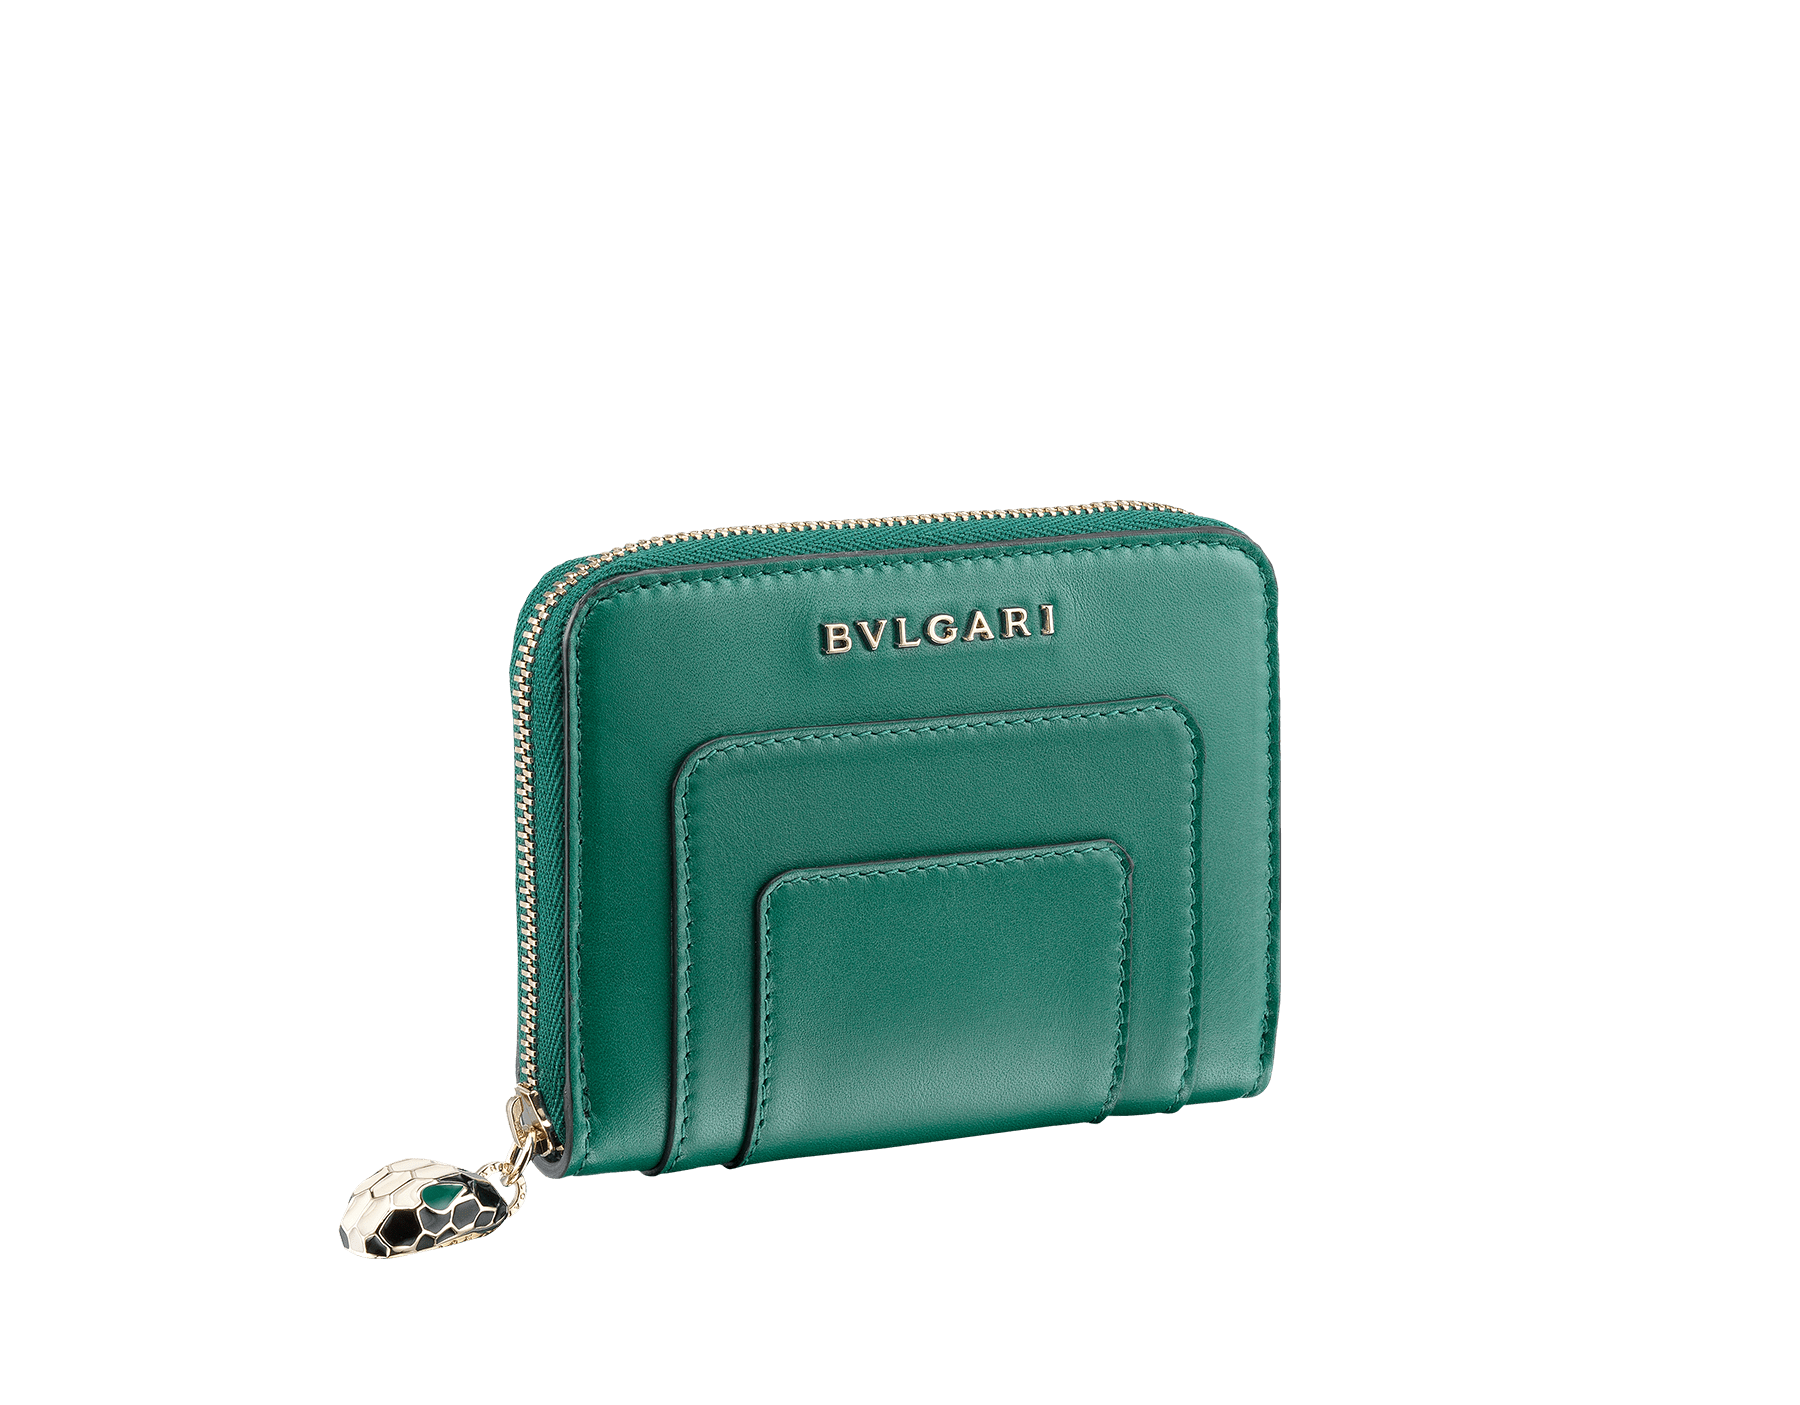 Serpenti Forever mini zipped wallet in cobalt tourmaline and aster amethyst calf leather. Iconic snakehead zip puller in black and white enamel, with green enamel eyes SEA-WLT-MINI-ZIP-CLc image 1